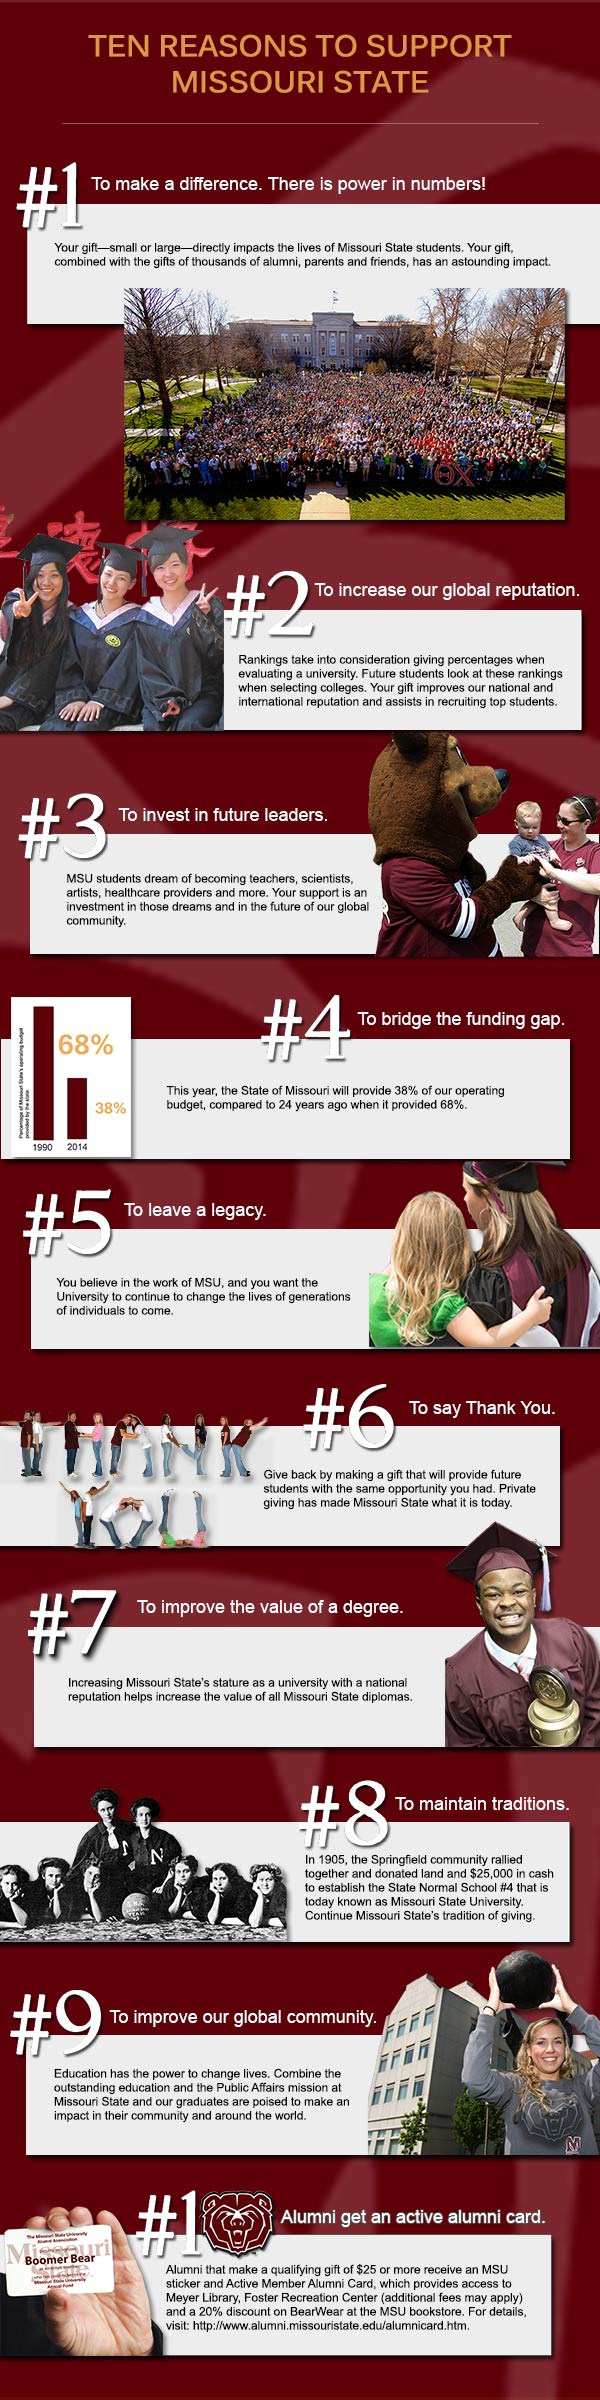 Ten Reasons to Support Missouri State